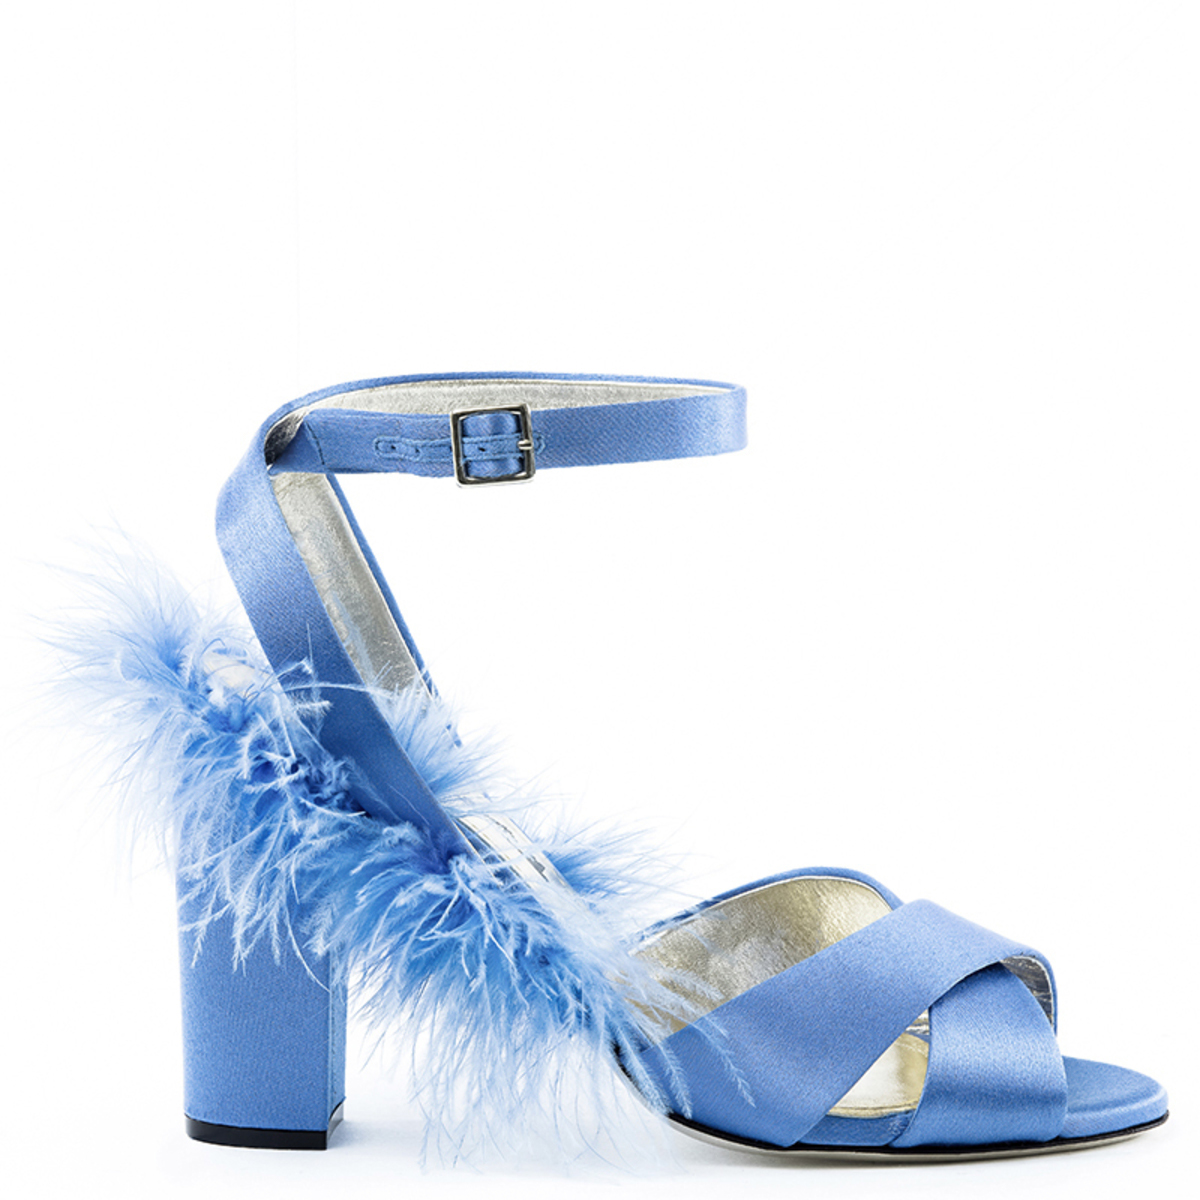 Plumes Sandals - LightBlue